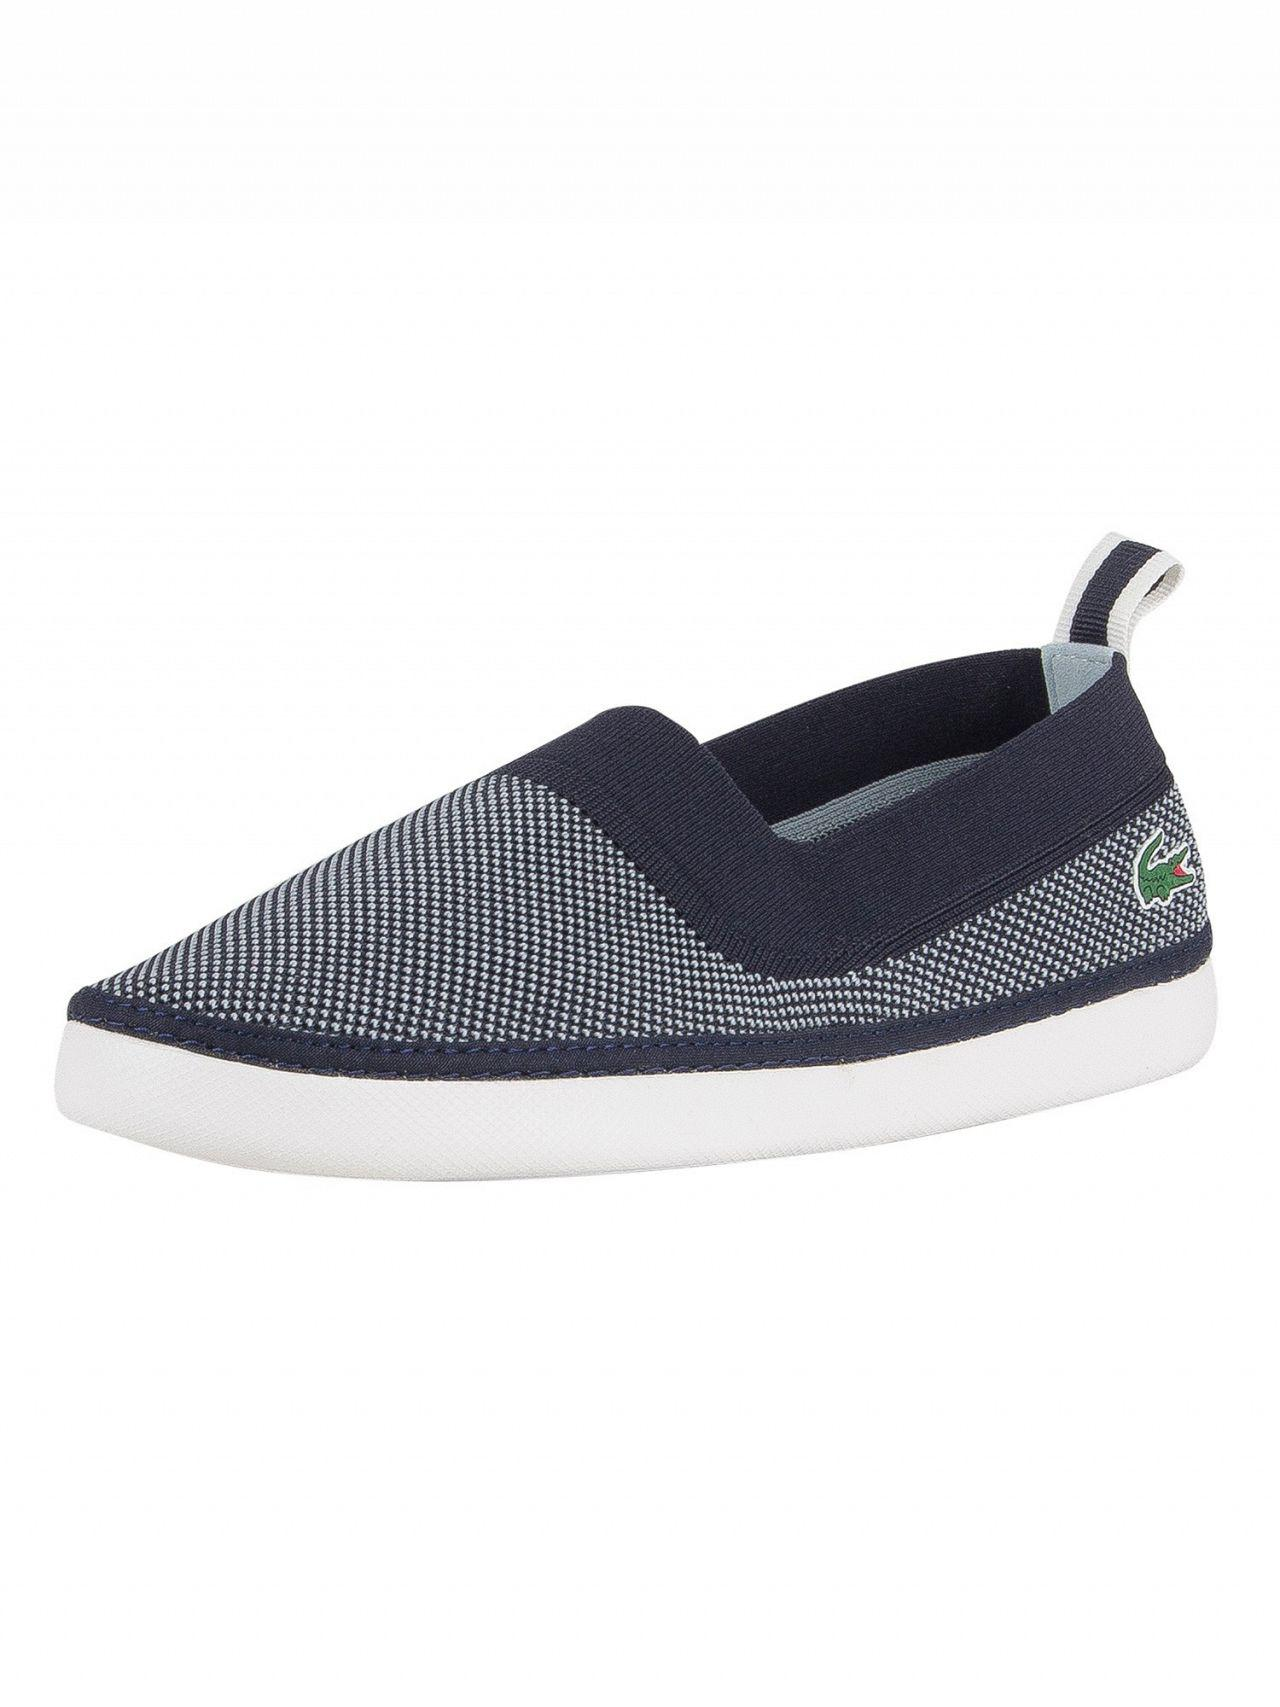 High quality Men s Trainers Men Lacoste Men s Lydro 117 1 CAM Slip on Trainers Blue blueBuy Perfect shoe